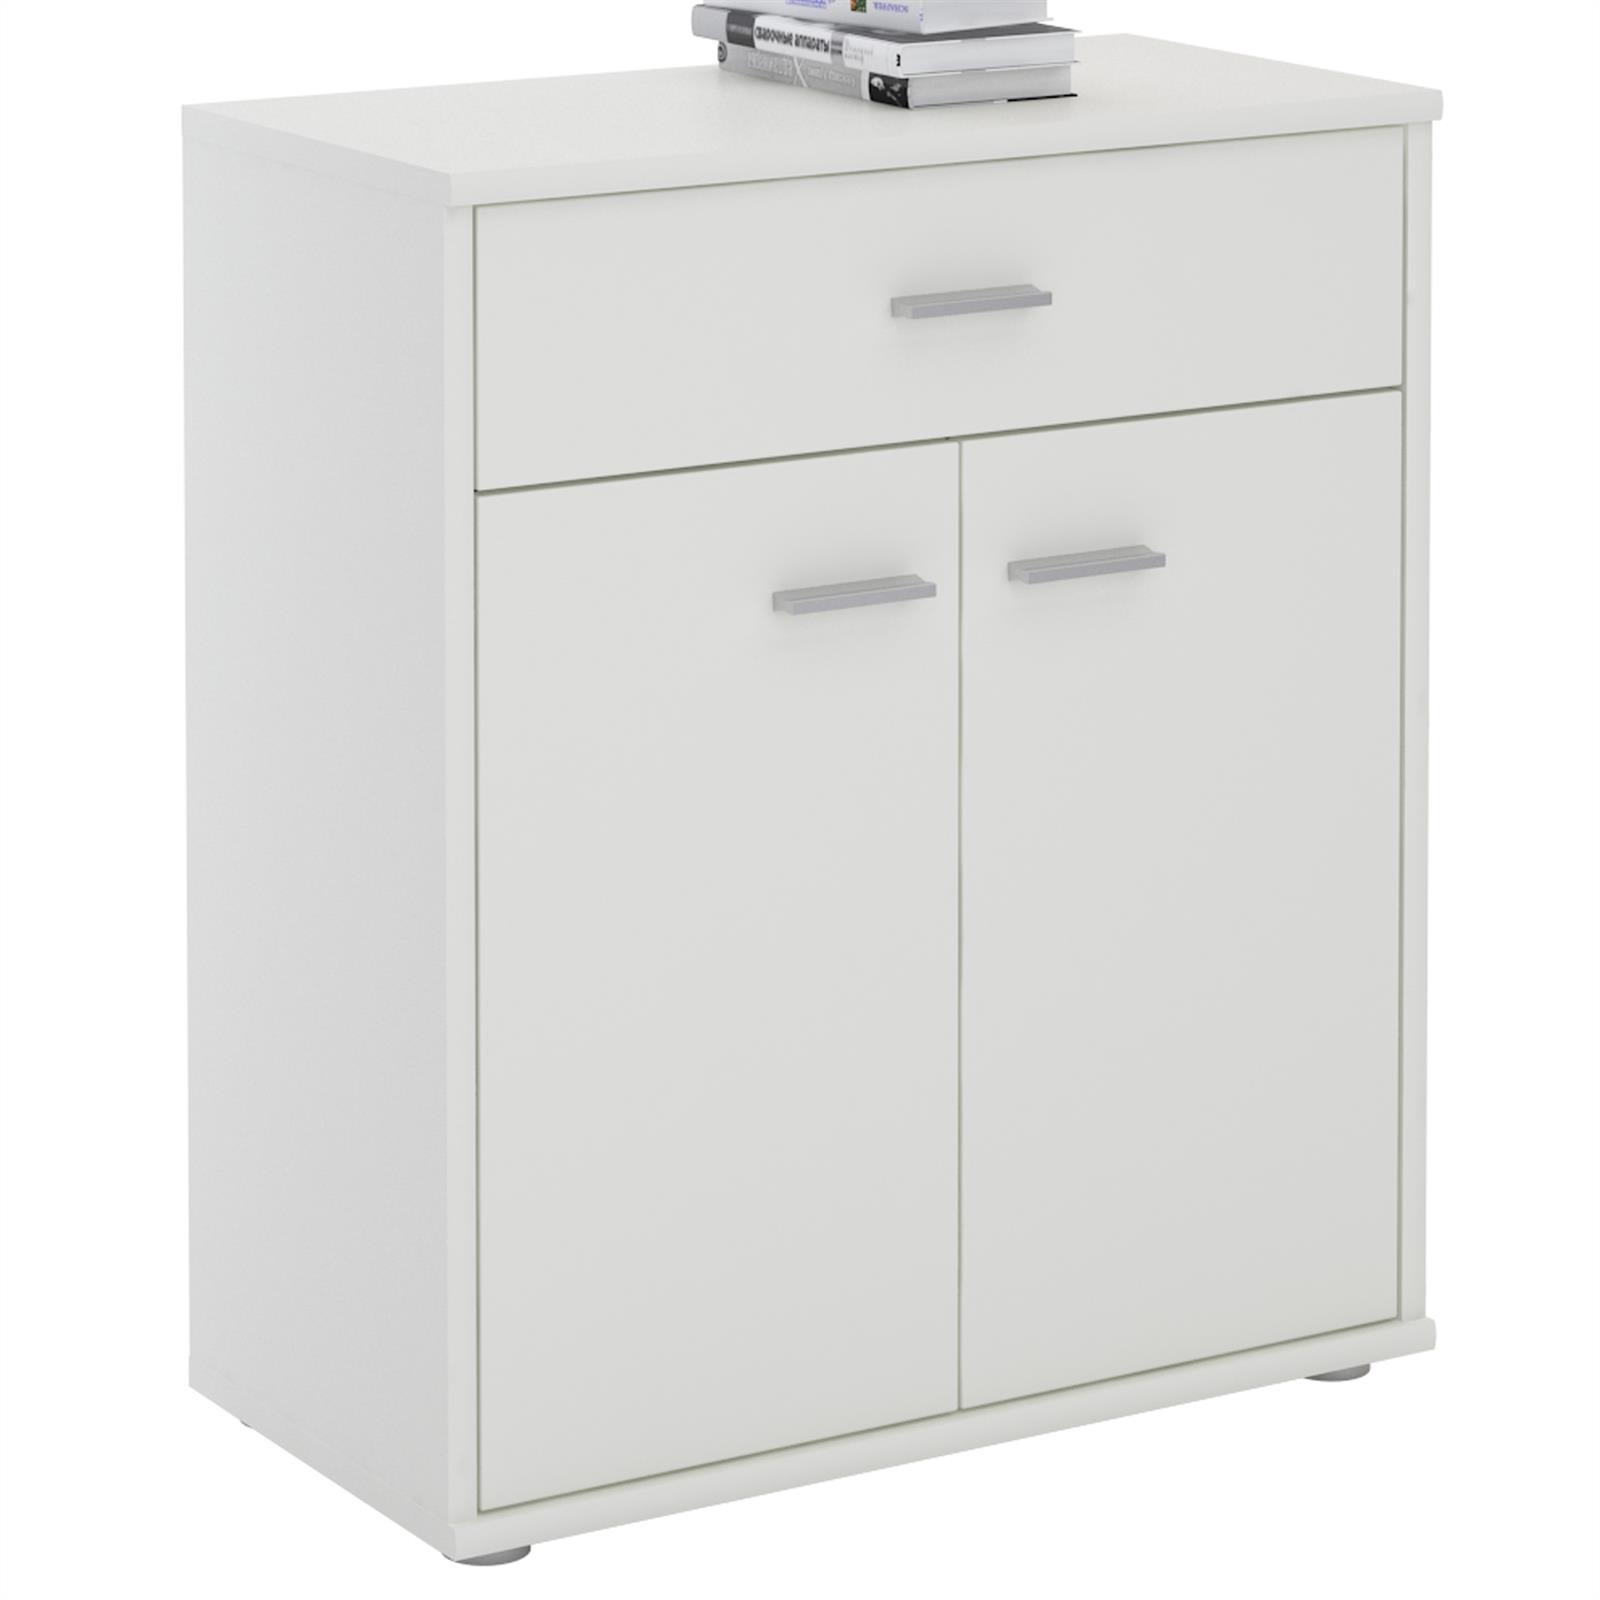 Commode monaco m lamin blanc mobil meubles for Meuble melamine blanc